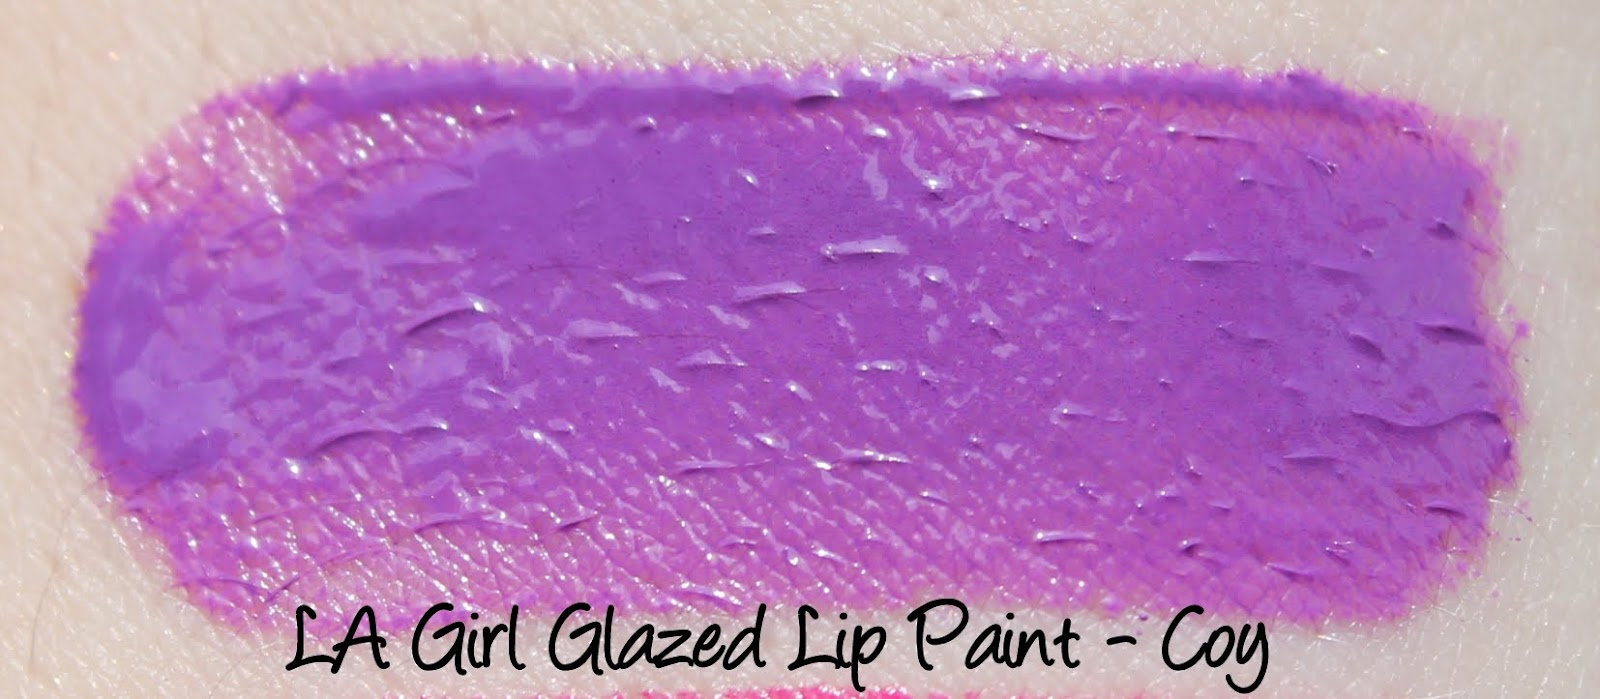 LA Girl Glazed Lip Paints - Coy Swatches & Review